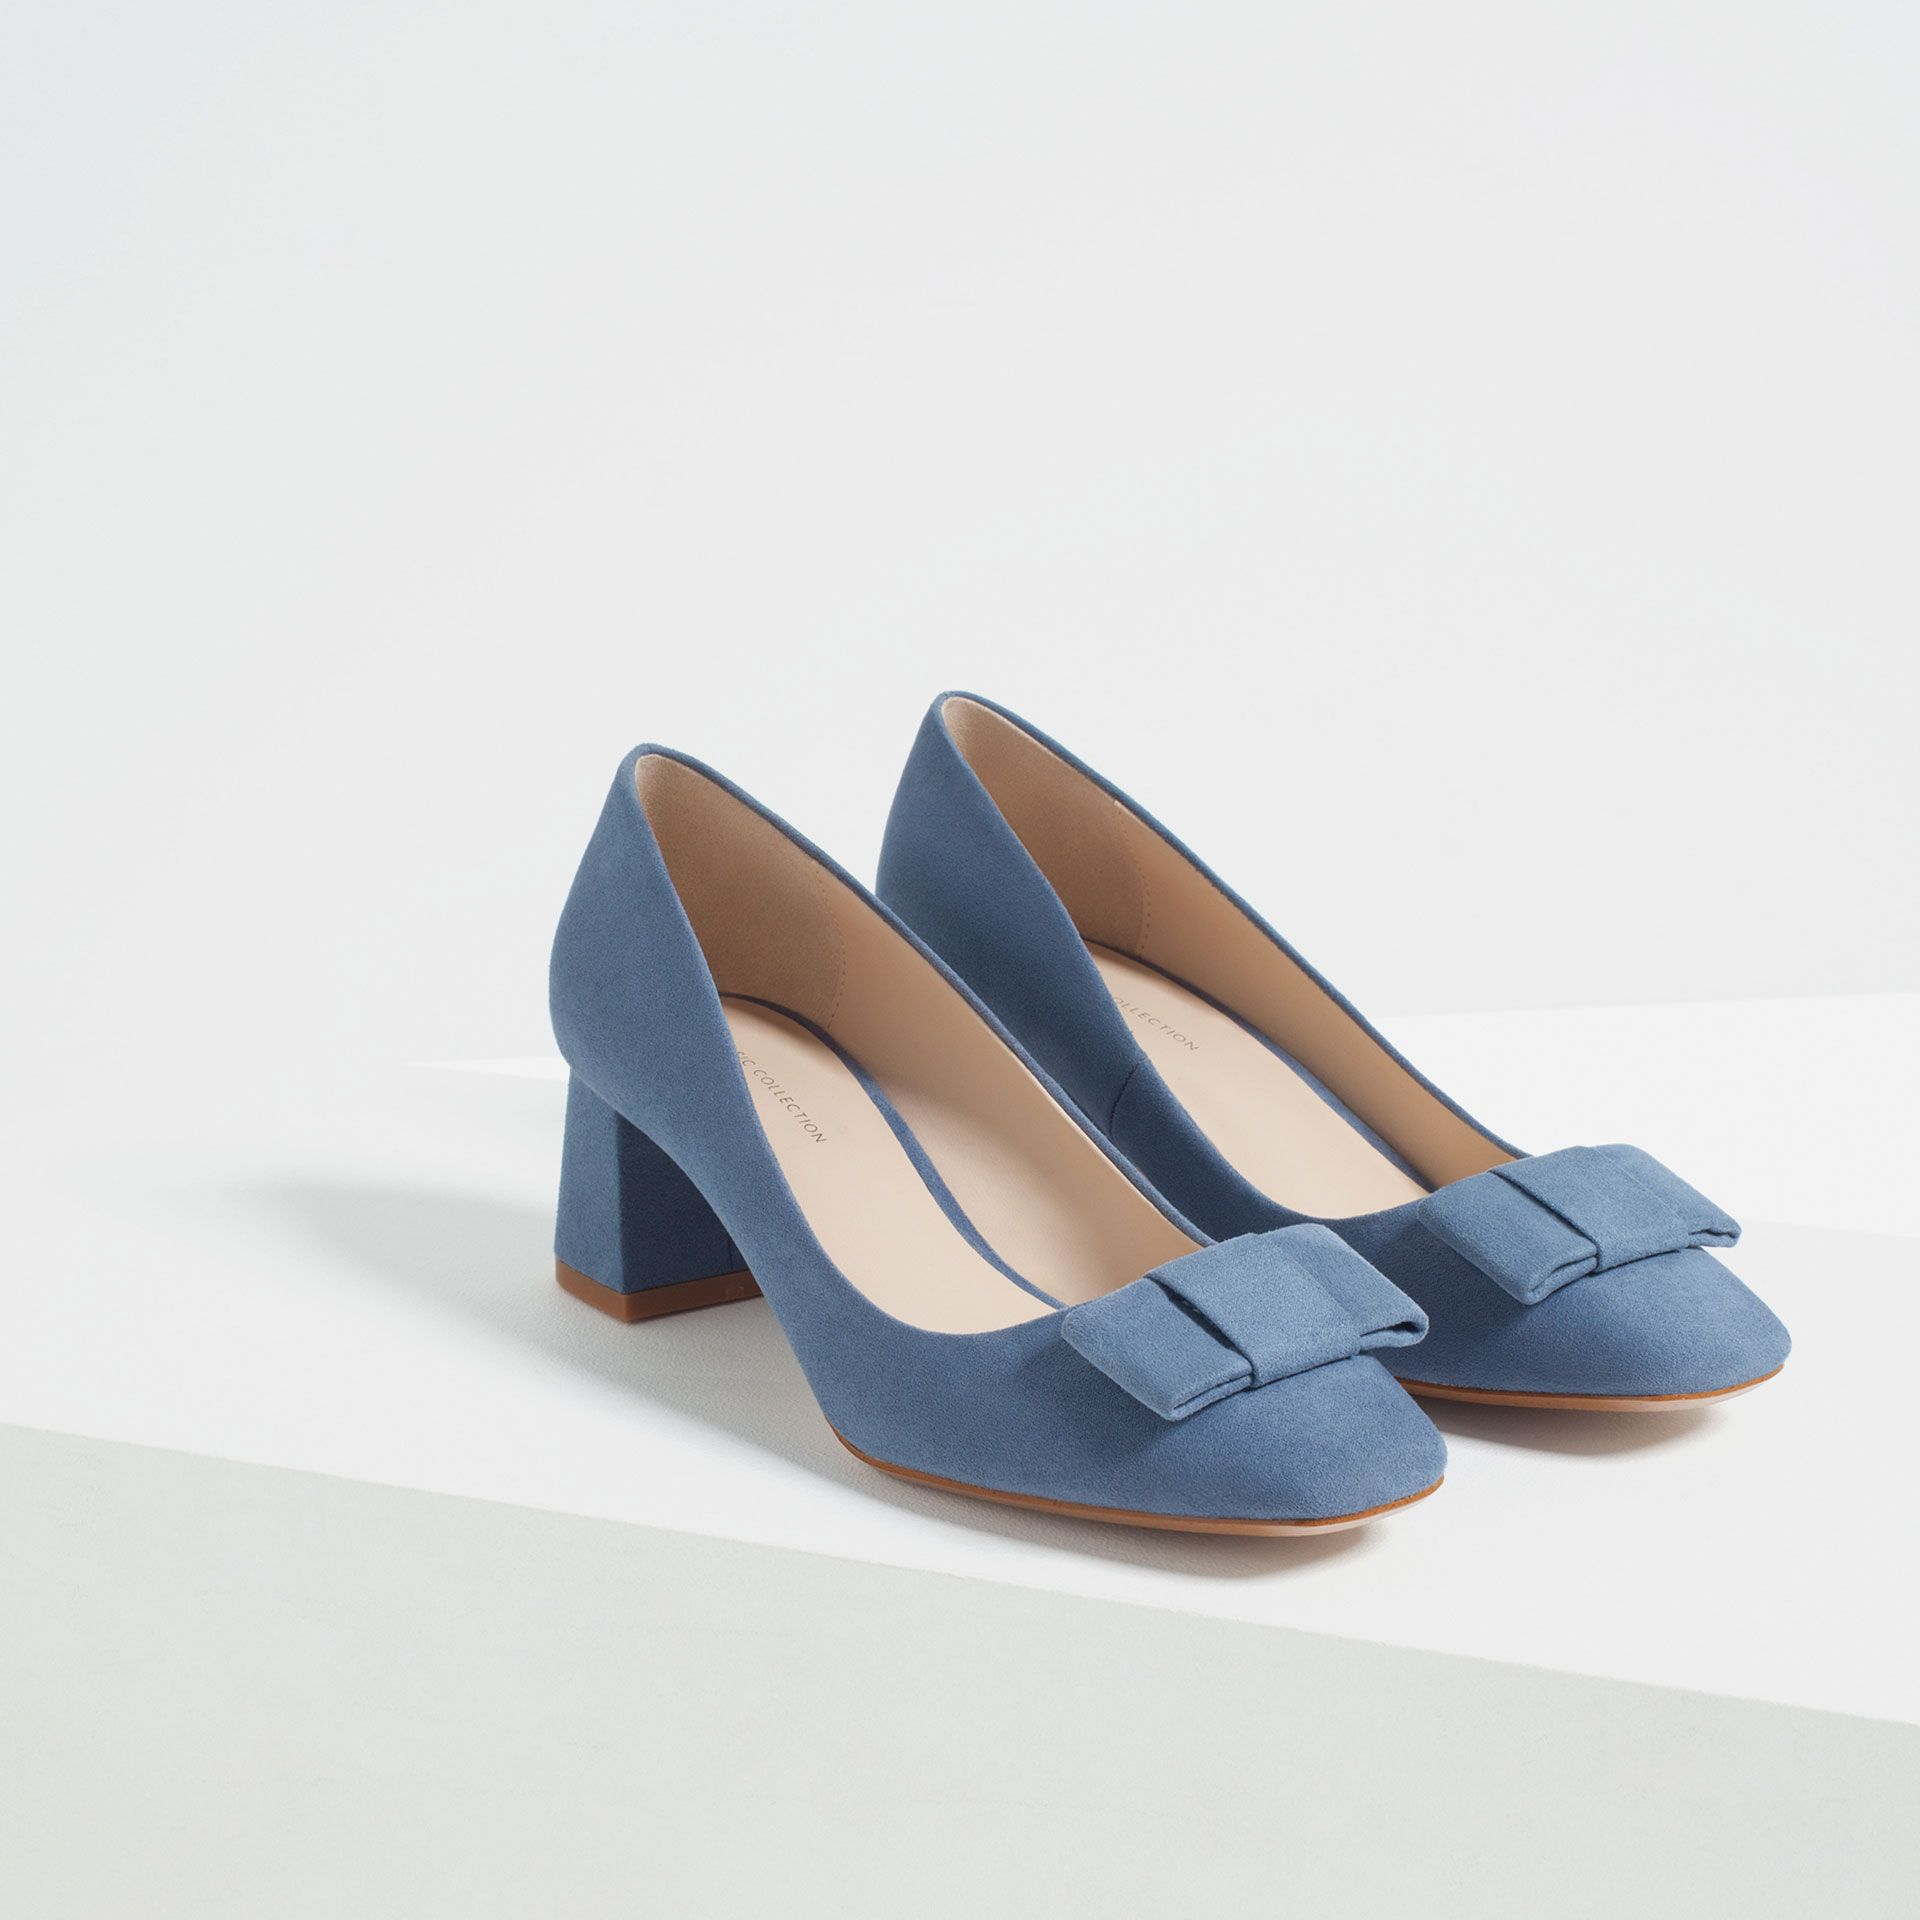 Image 3 of MEDIUM HEEL SHOES WITH BOW from Zara